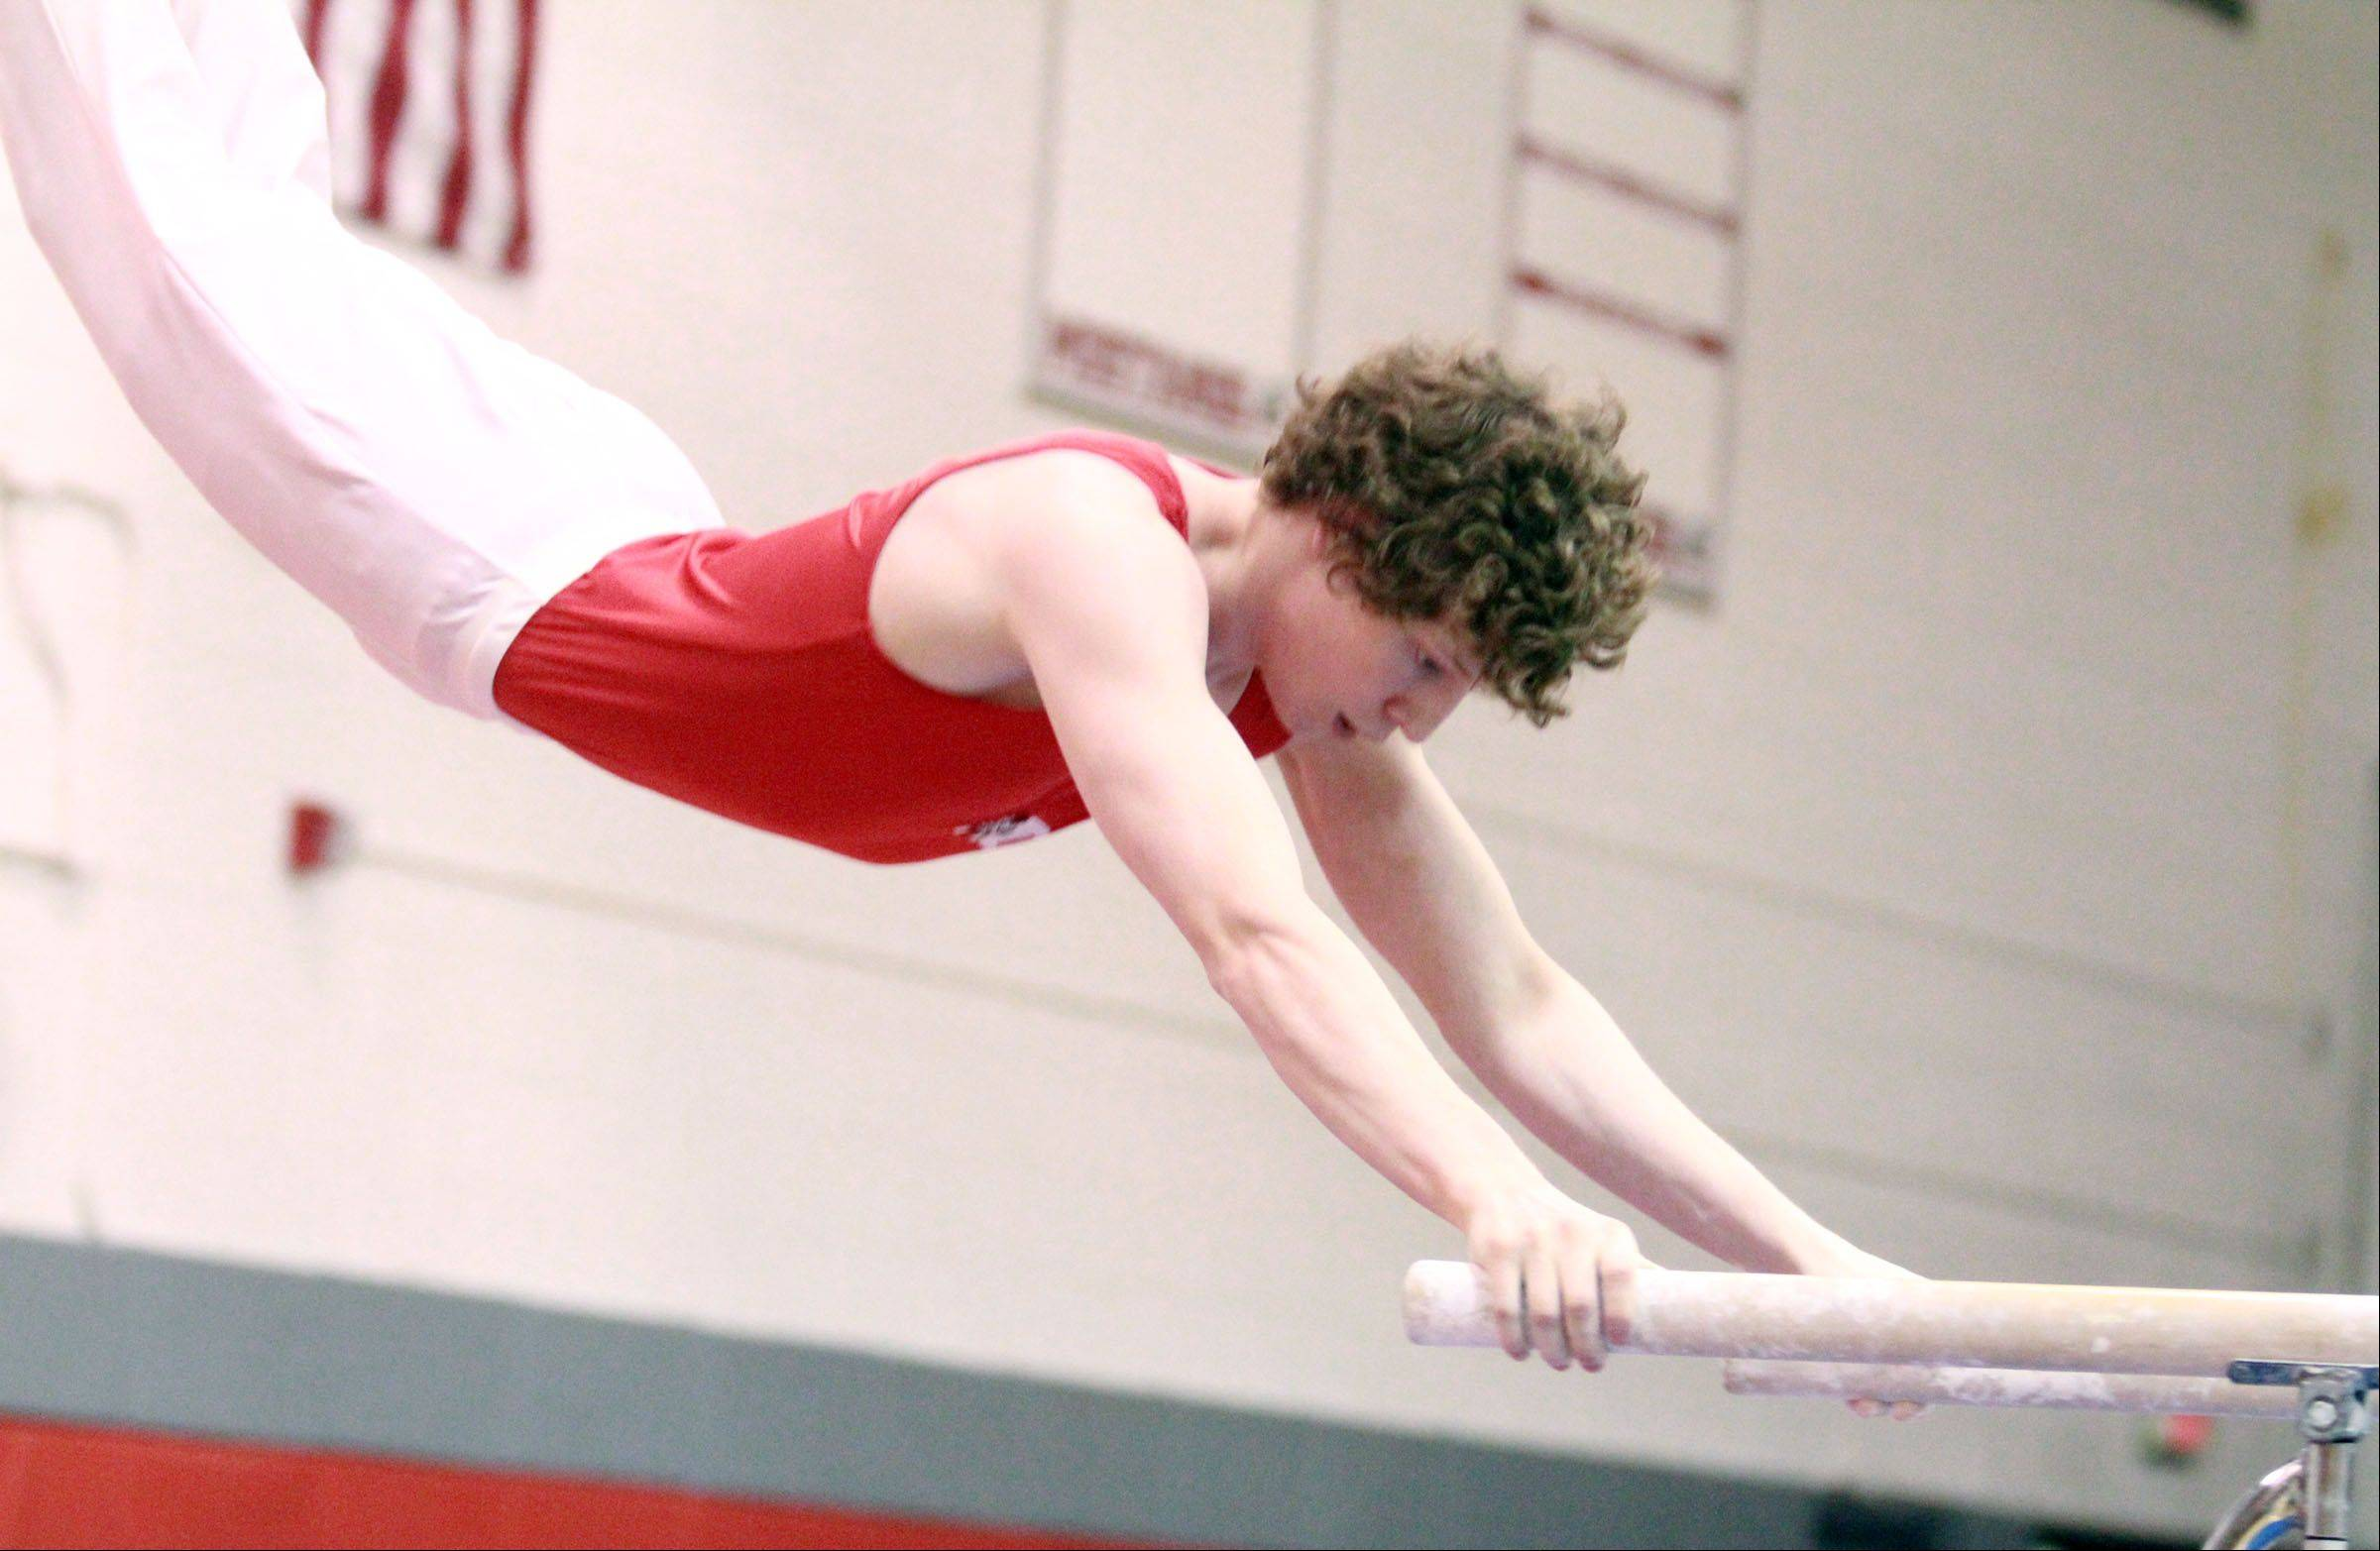 Mundelein's Jacob Petri competes on the parallel bars at the Mundelein boys gymnastics sectional on Saturday.